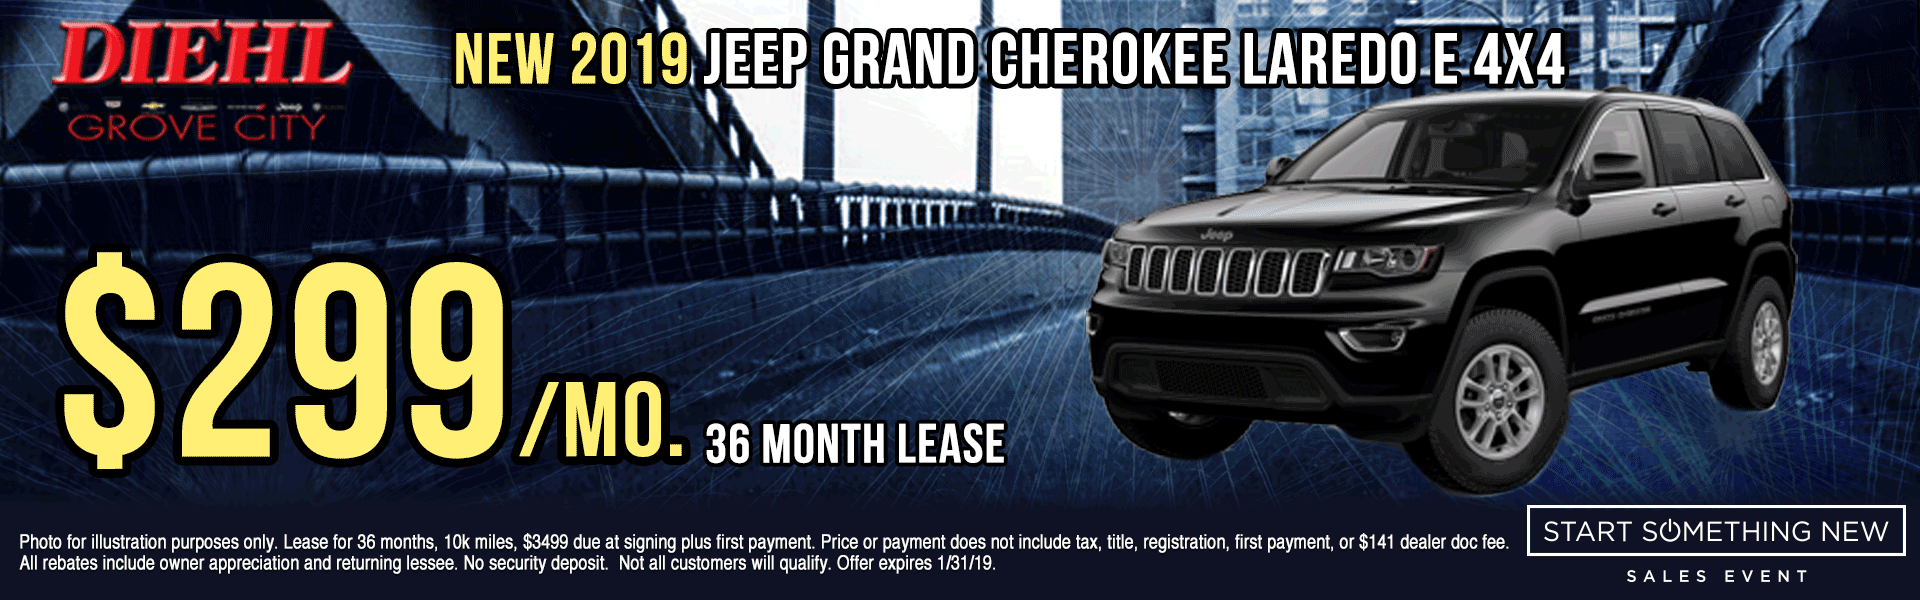 J1363--2019-JEEP-GRAND-CHEROKEE-LAREDO-4X4 Start Something New Sales Event Chrysler Specials Dodge Specials Jeep Specials RAM Specials grove city specials Diehl specials Diehl Automotive grove city lease specials